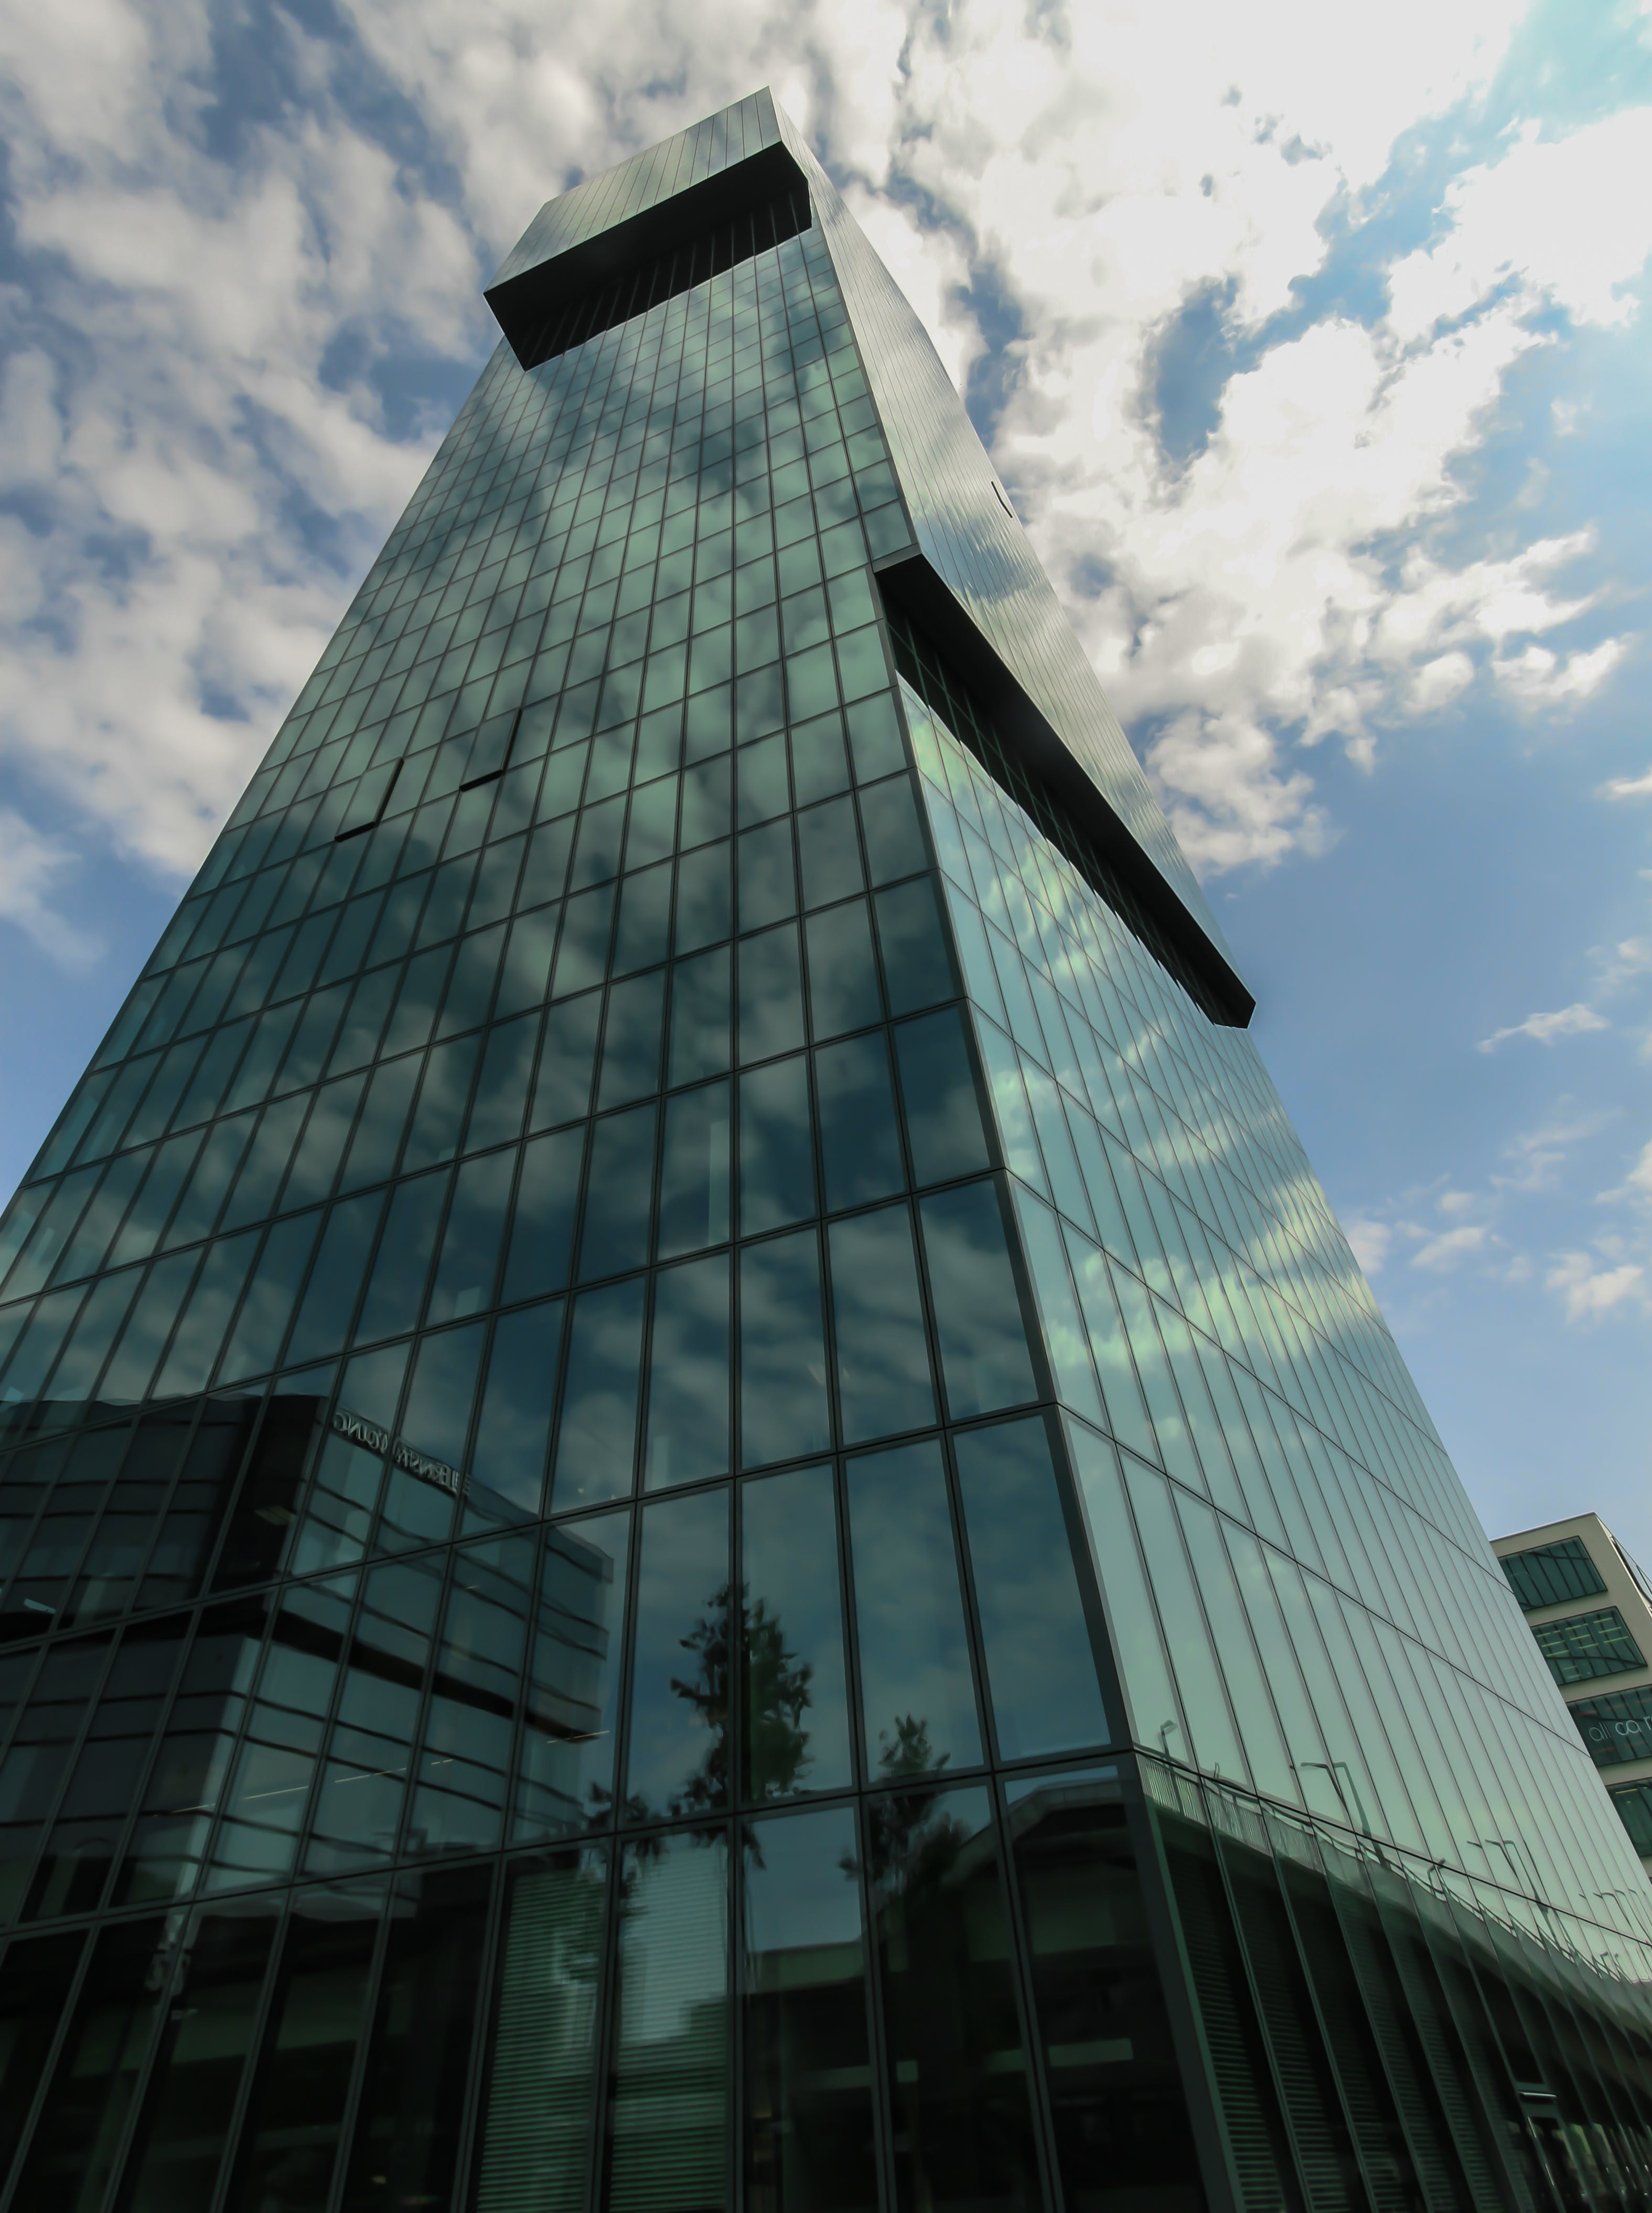 Free stock photo of Prime Tower, zurich